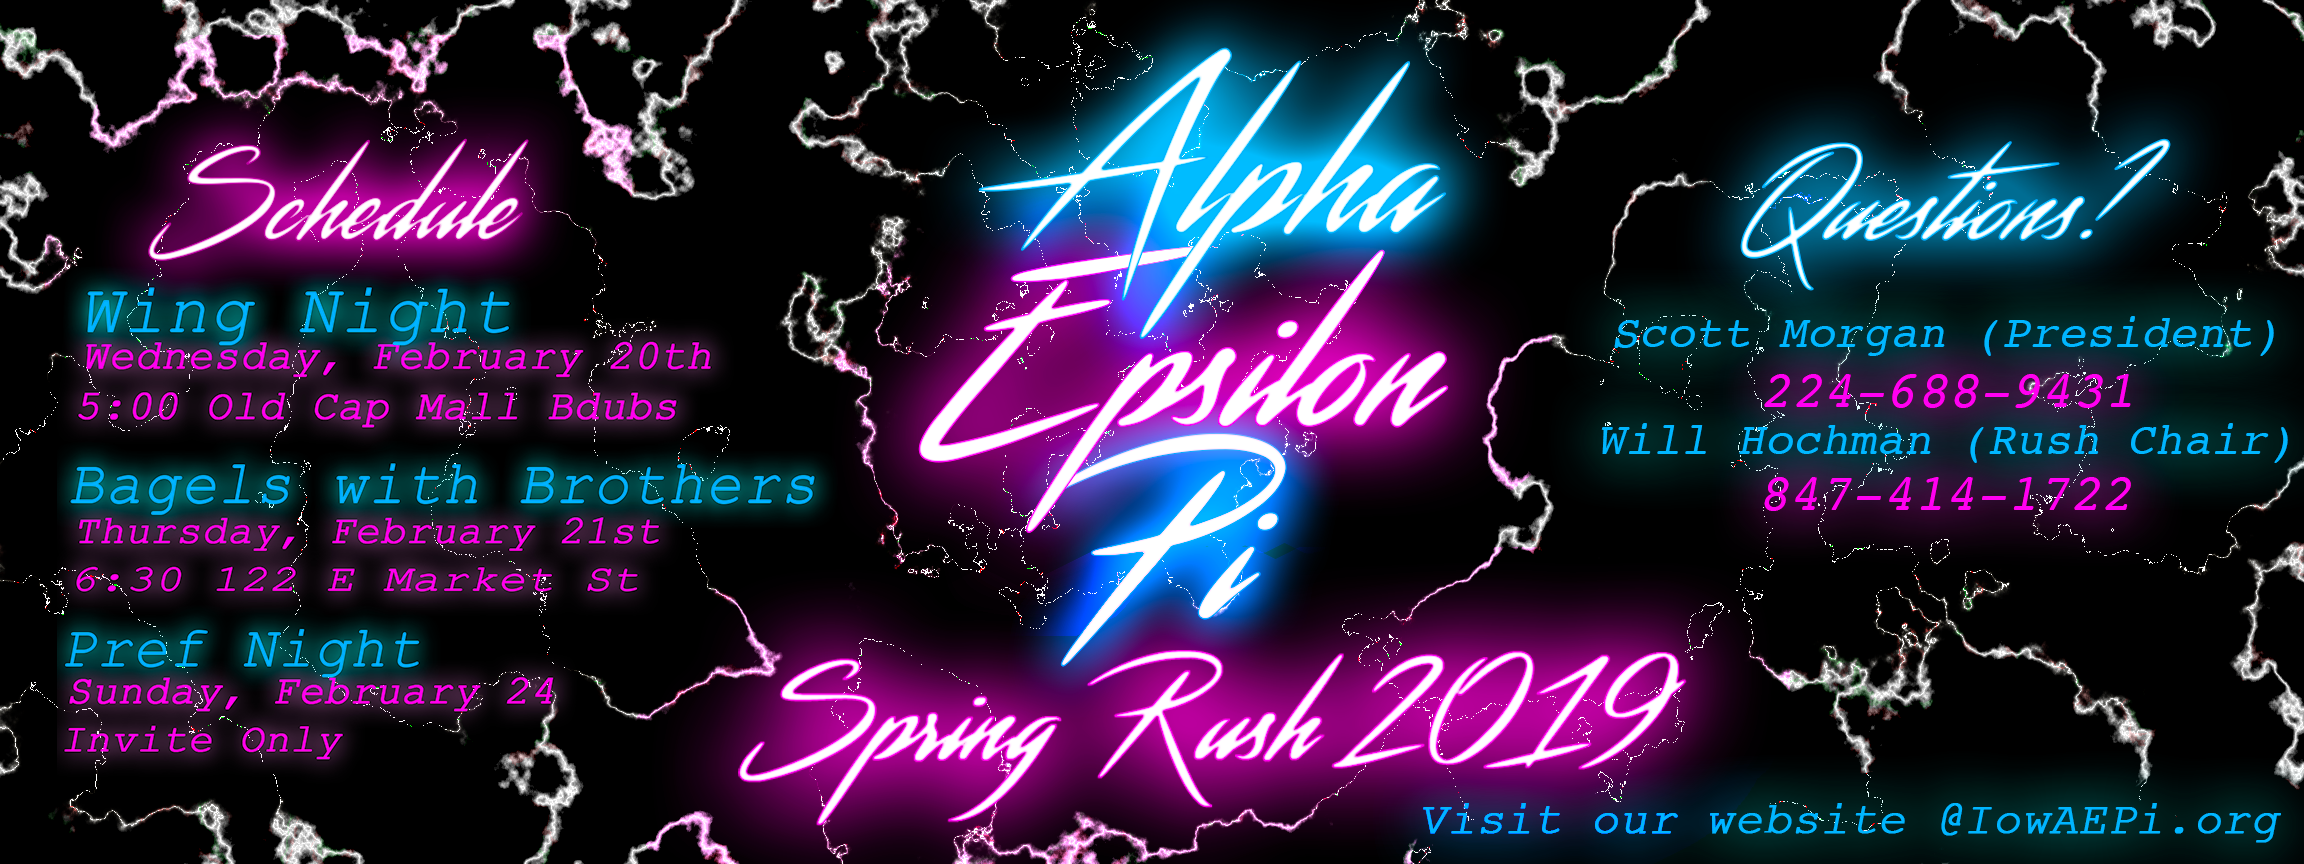 AEPi Rush Schedule Facebook-2.png